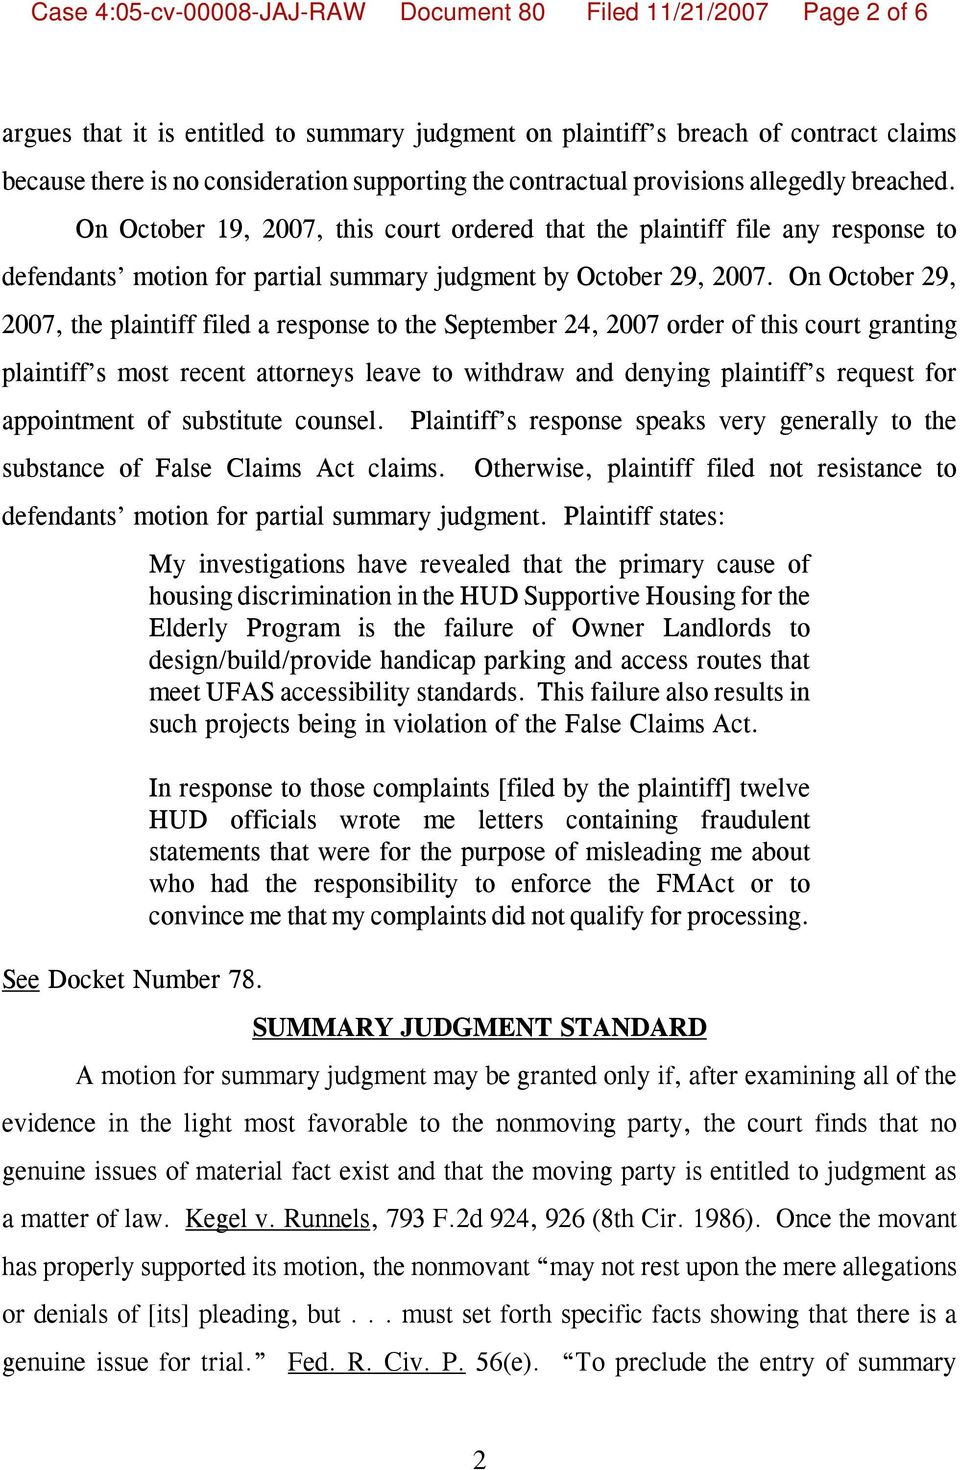 On October 19, 2007, this court ordered that the plaintiff file any response to defendants motion for partial summary judgment by October 29, 2007.